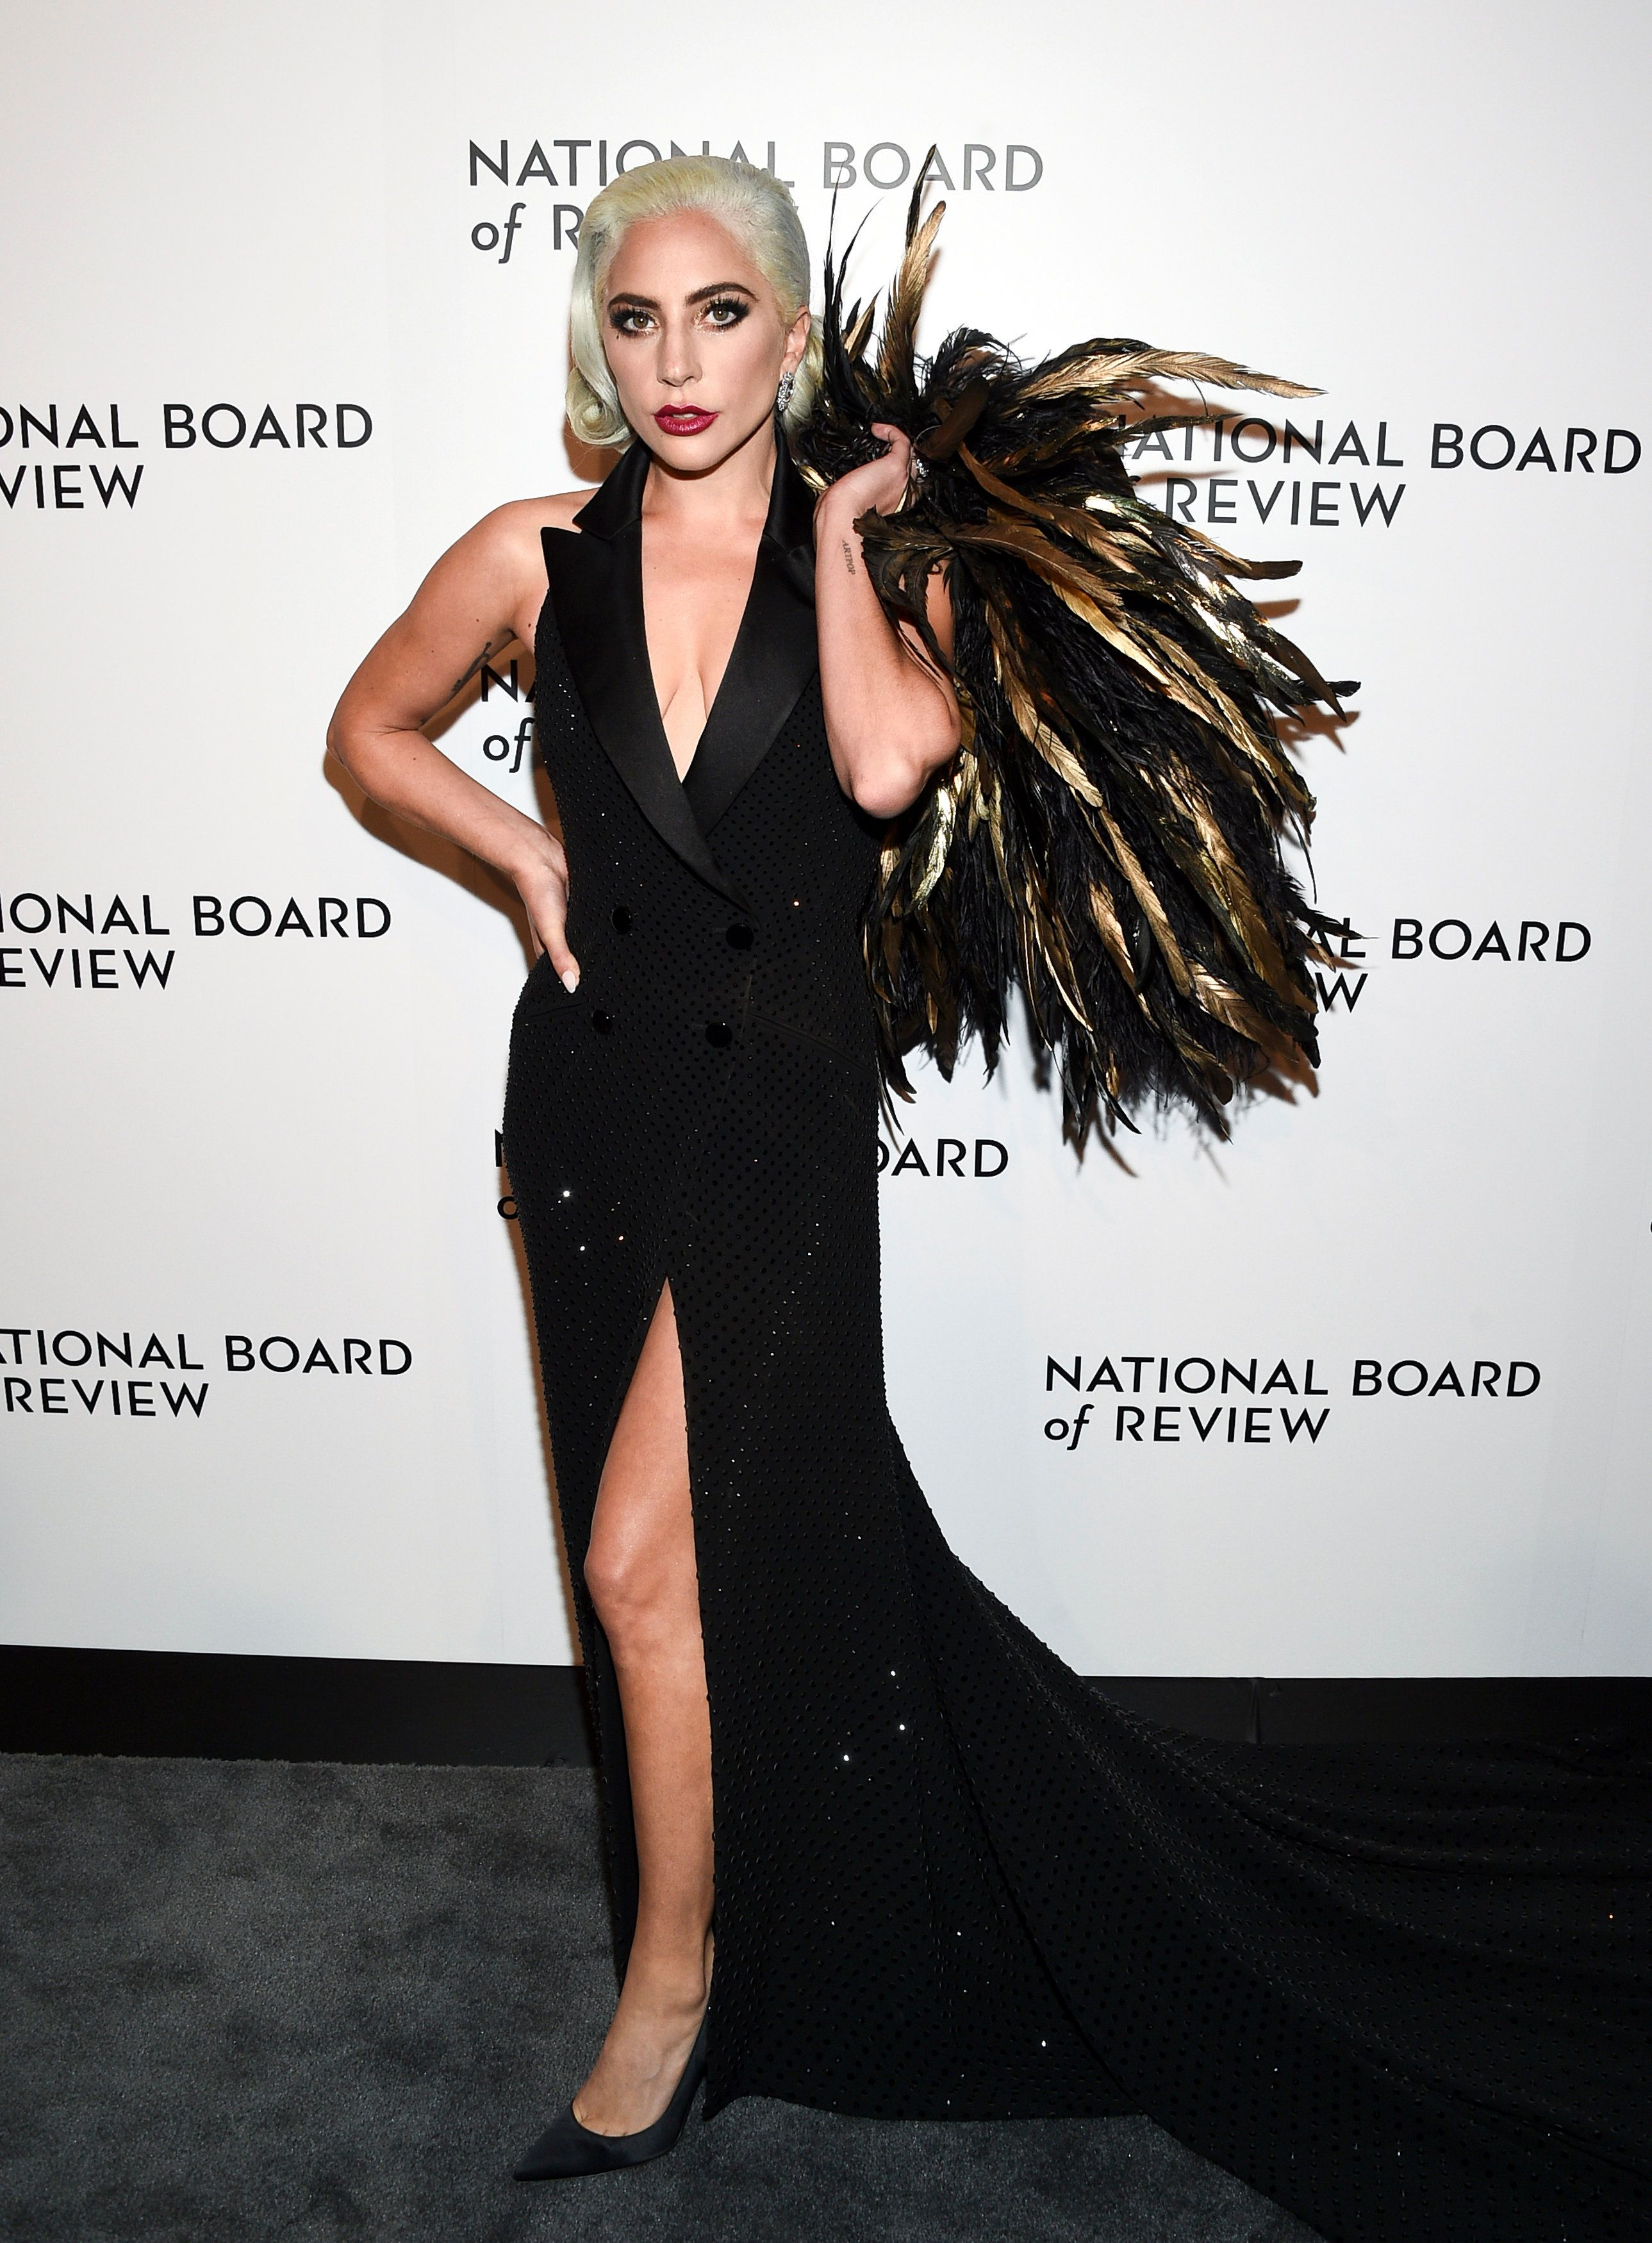 Best actress award honoree Lady Gaga attends the National Board of Review awards gala at Cipriani 42nd Street on Tuesday, Jan. 8, 2019, in New York. (Photo by Evan Agostini/Invision/AP)